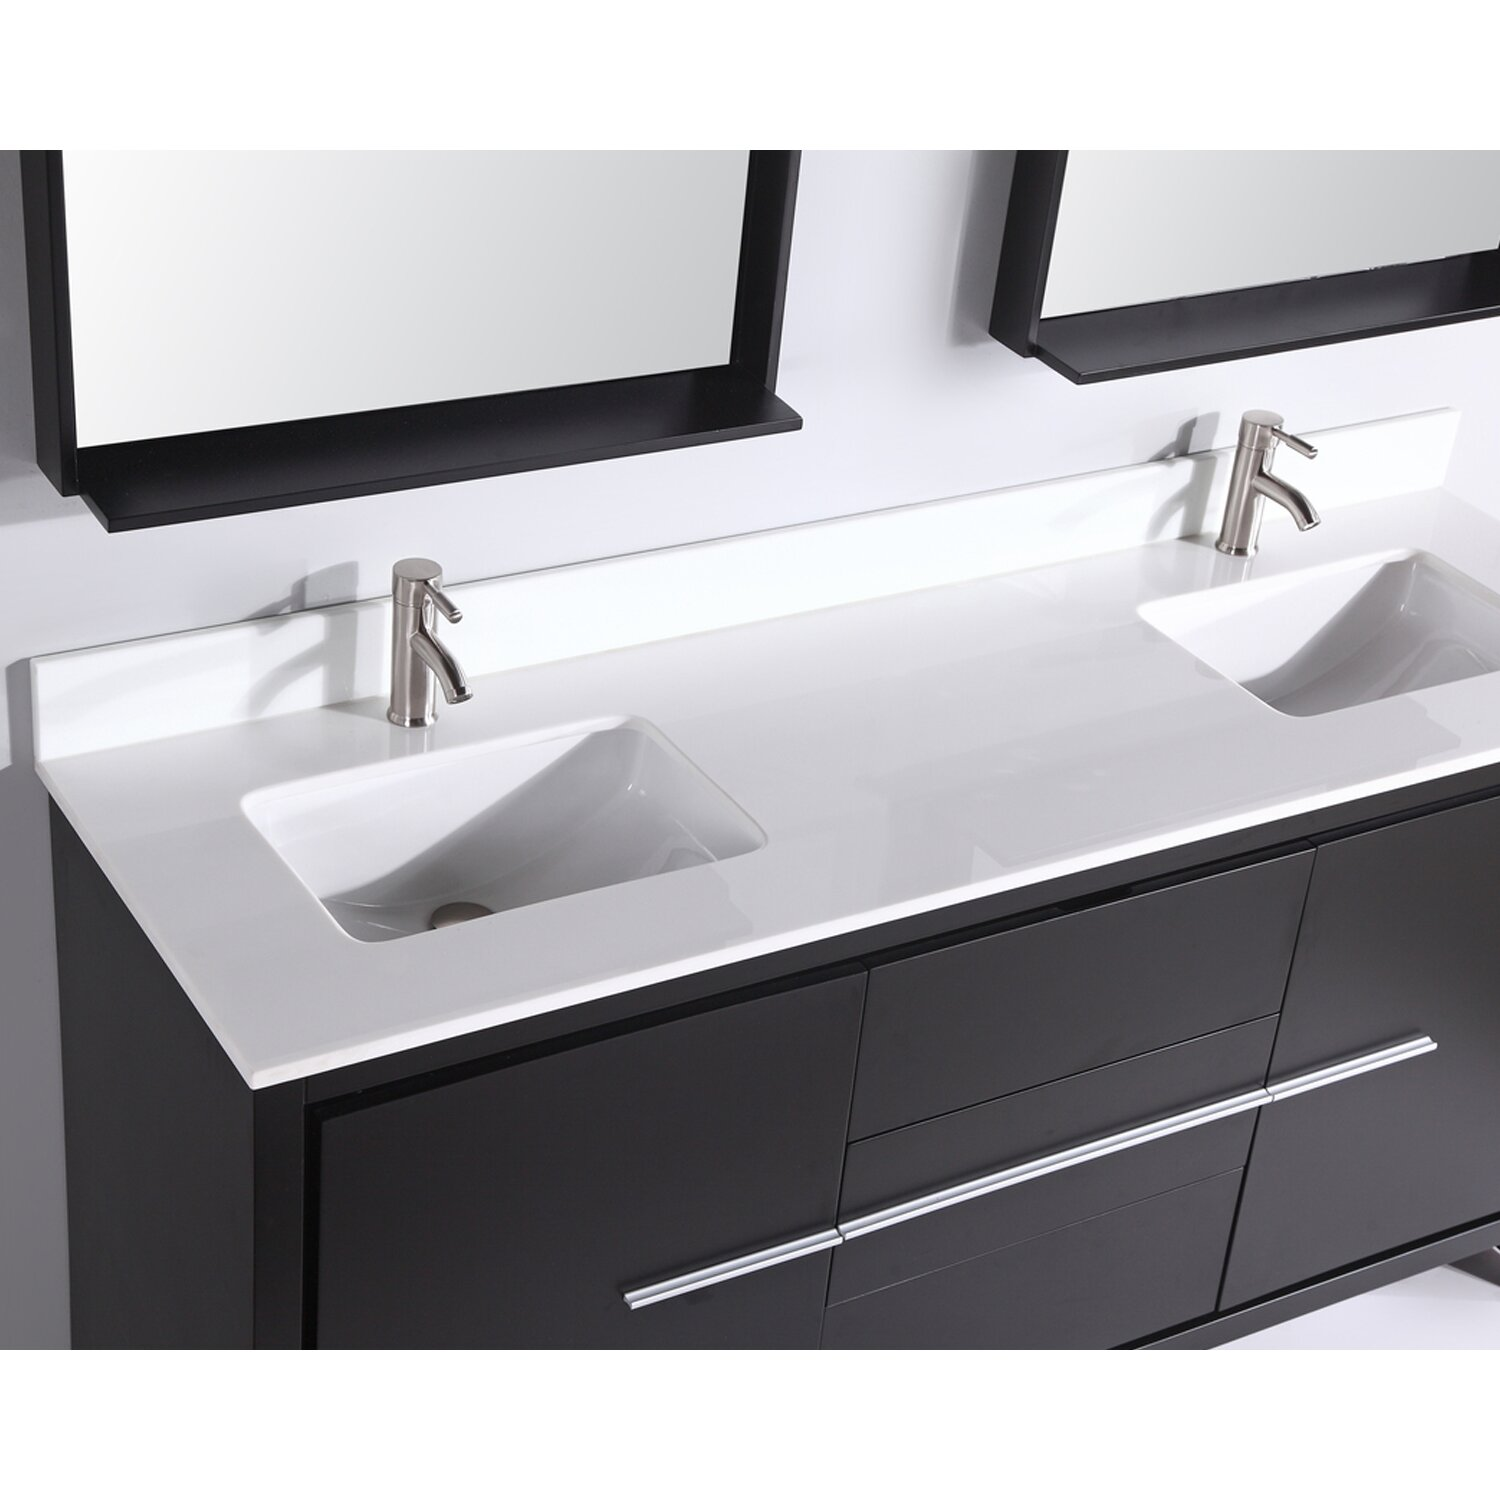 Mtdvanities cypress 72 double modern bathroom vanity set - Modern vanity mirrors for bathroom ...